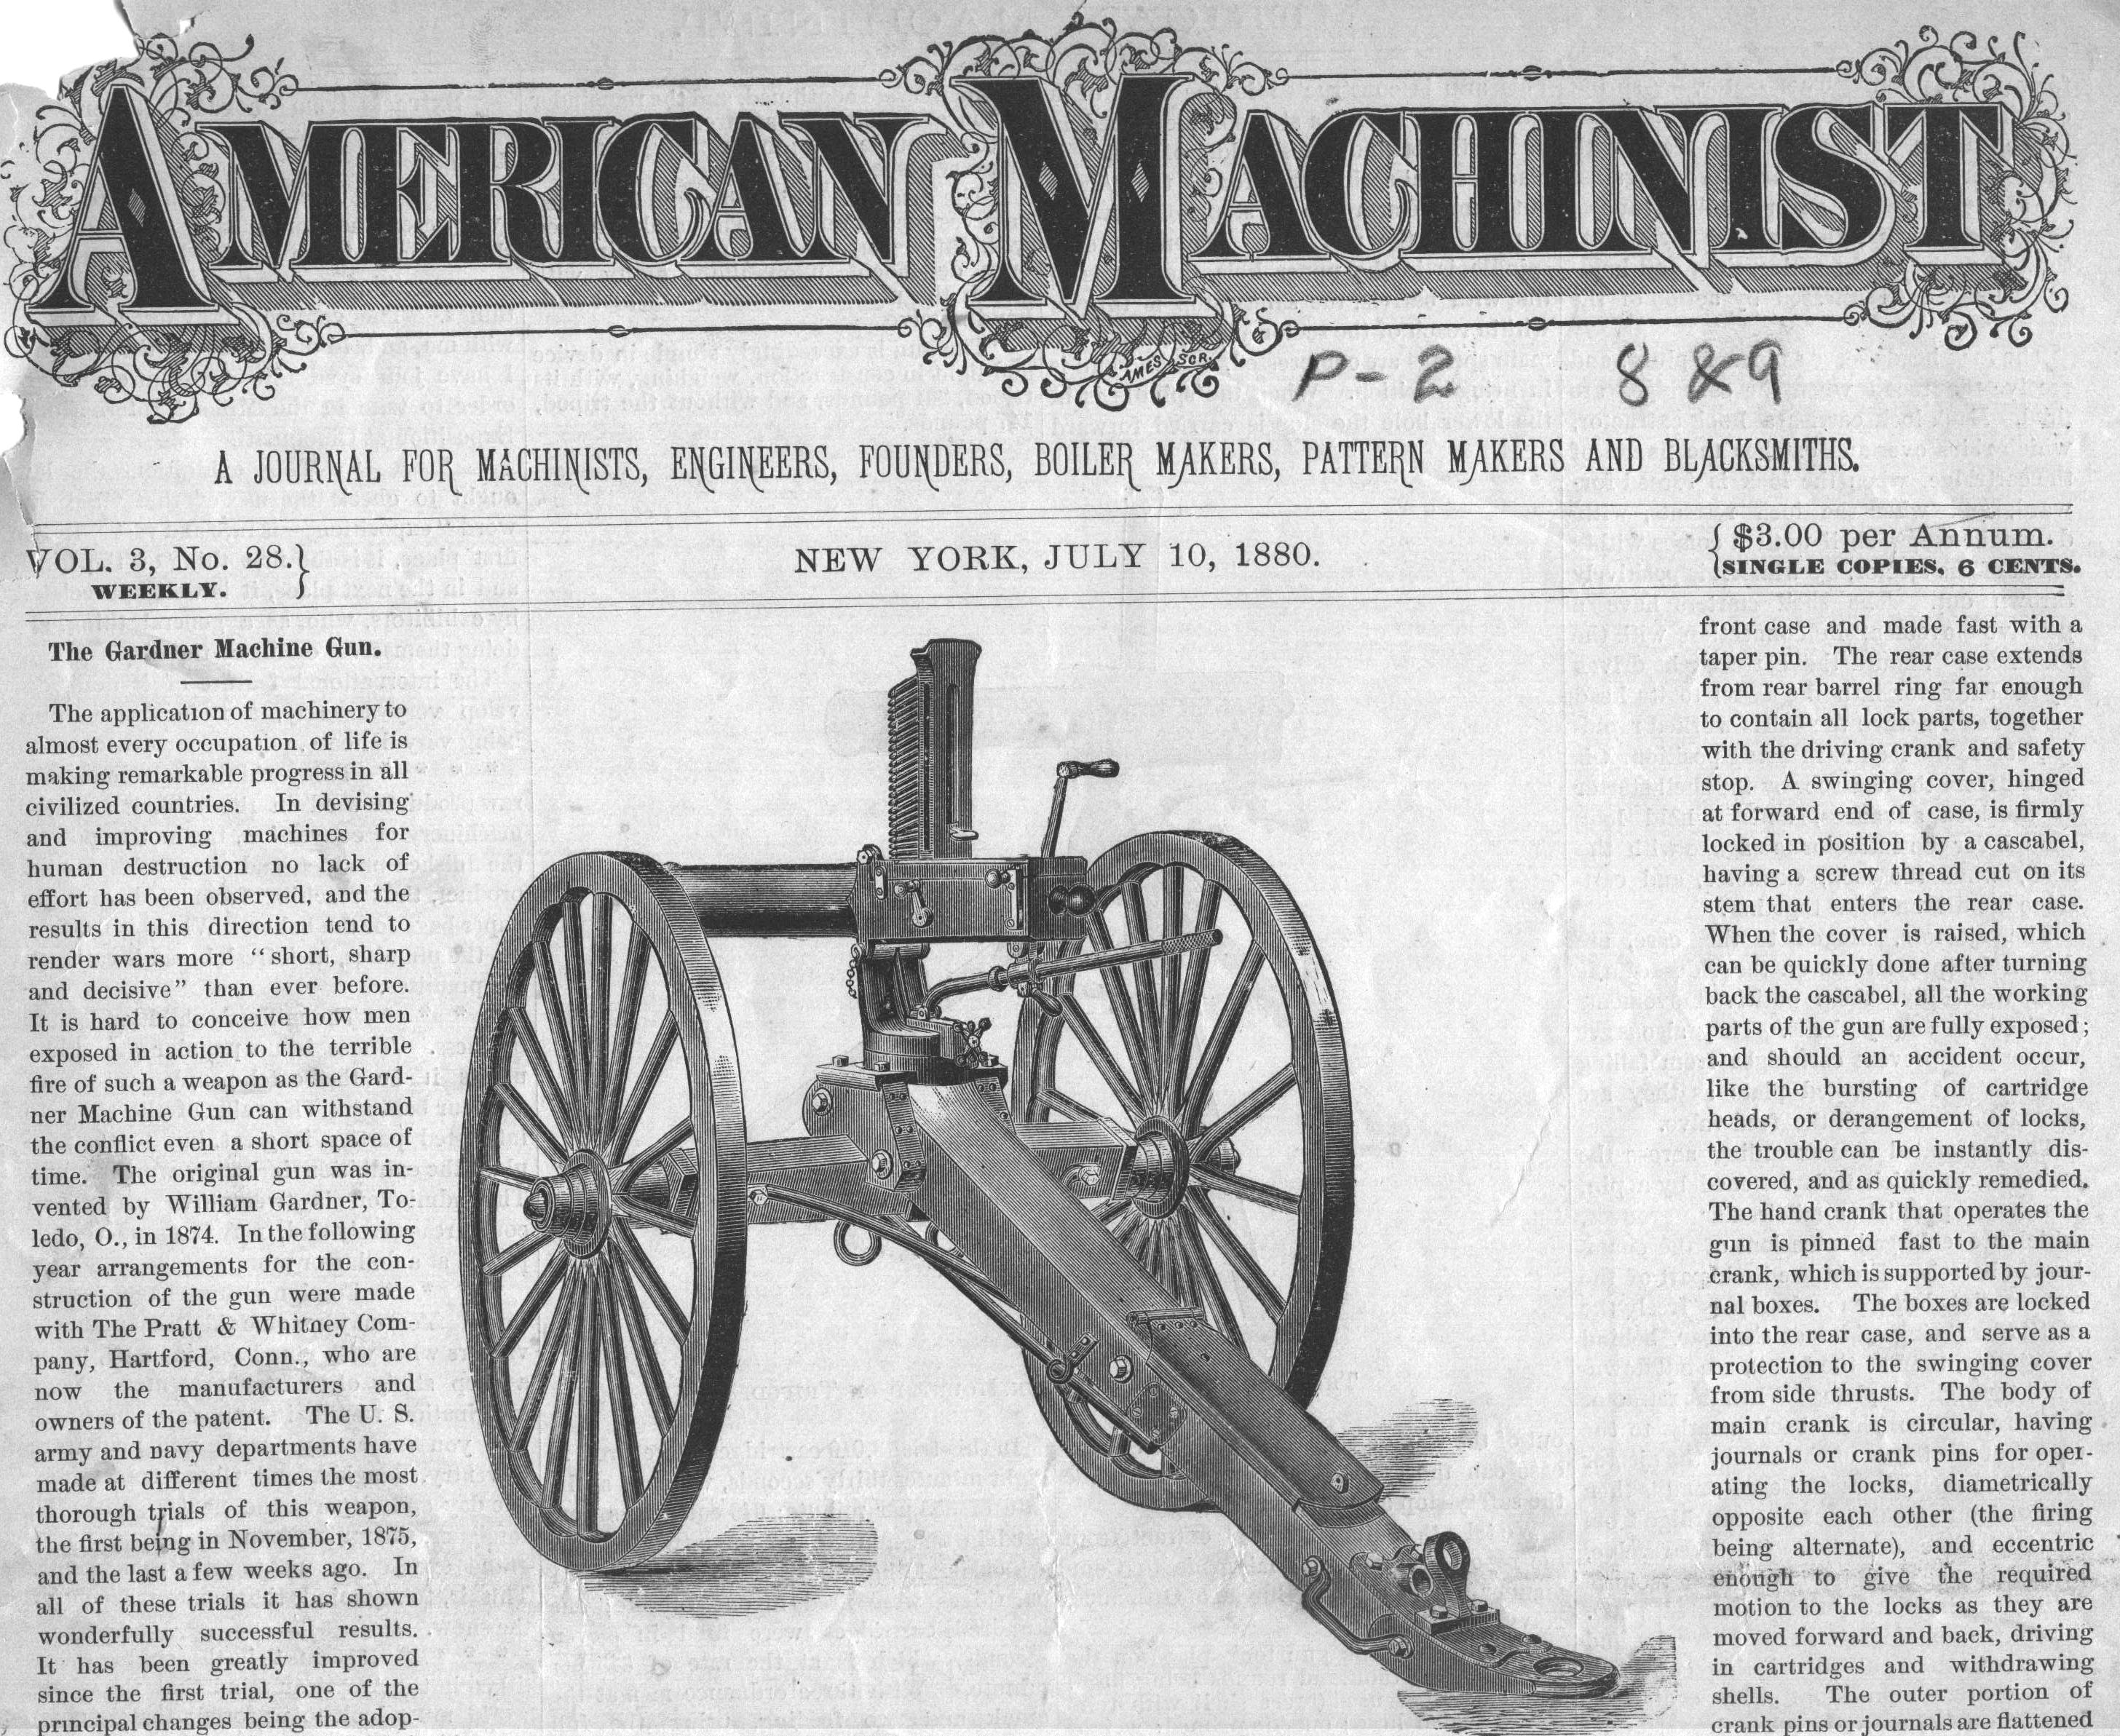 http://antiquemachinery.com  Gardener civil war wagon wheeled  hand crank  Automatic July 10 1880 AM